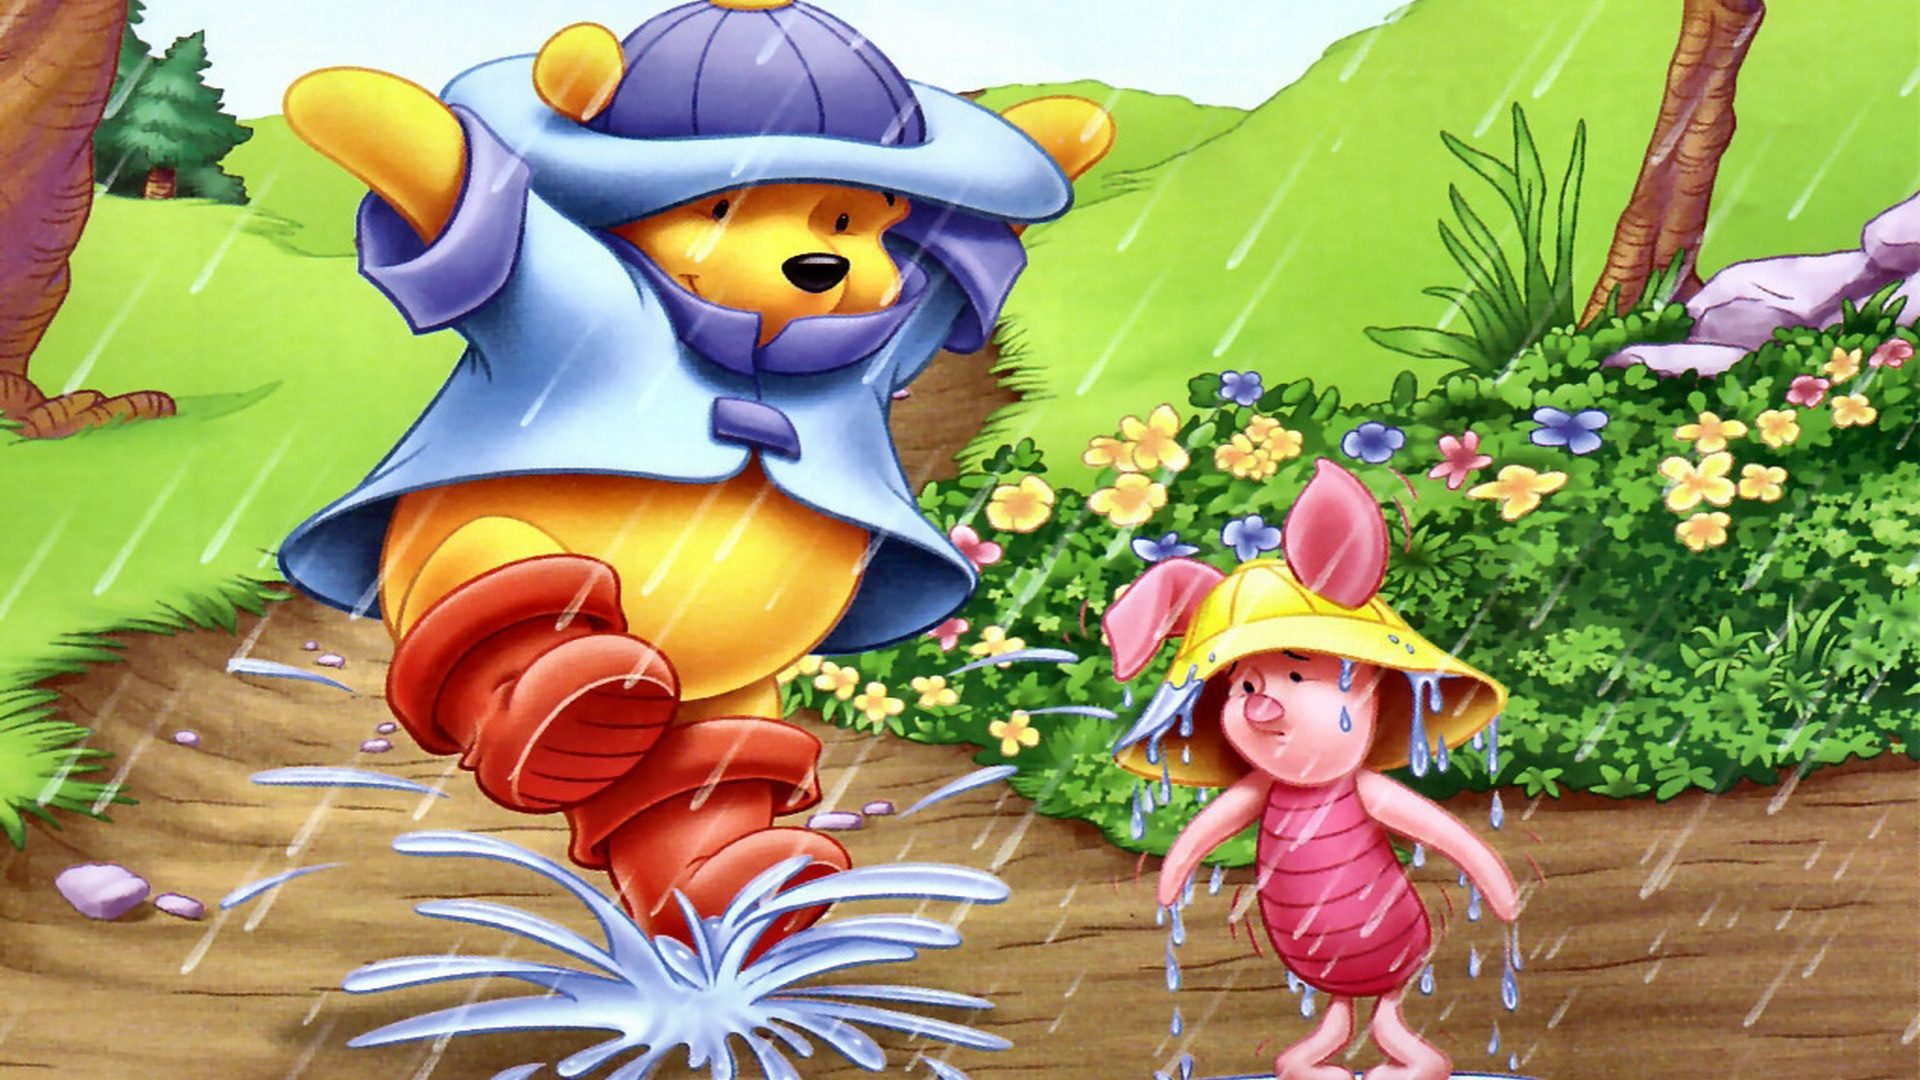 Piglet And Winnie The Pooh Dancing In The Rain Hd